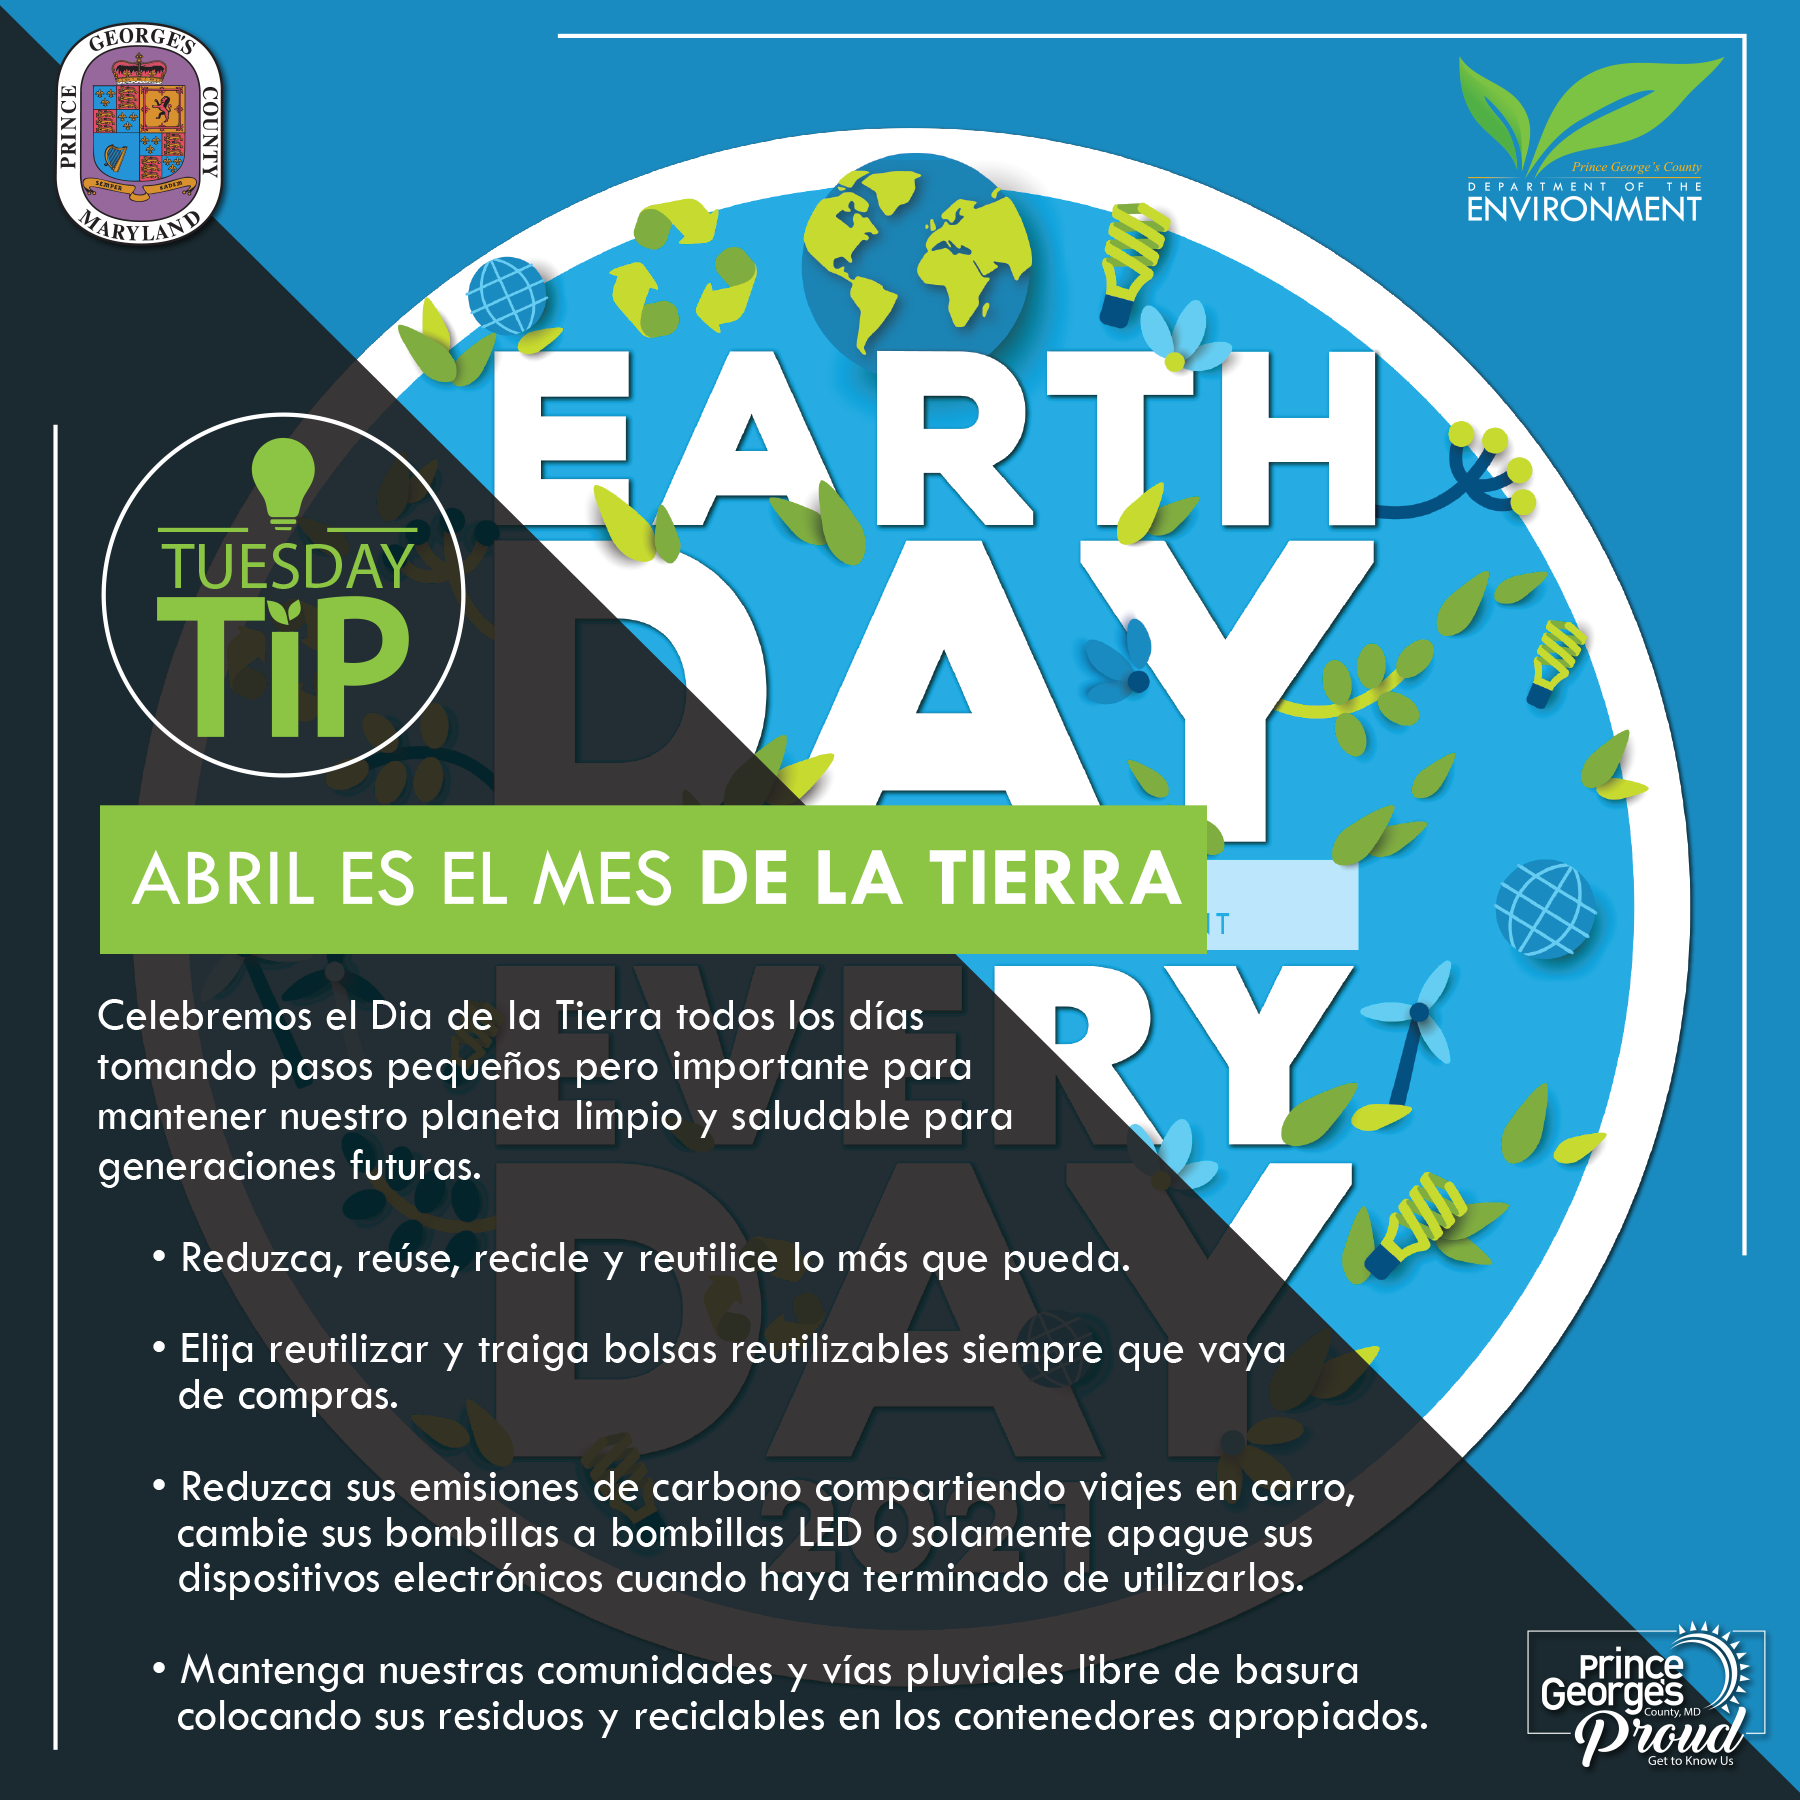 Tues Tip 3.30.21 Earth Month sp